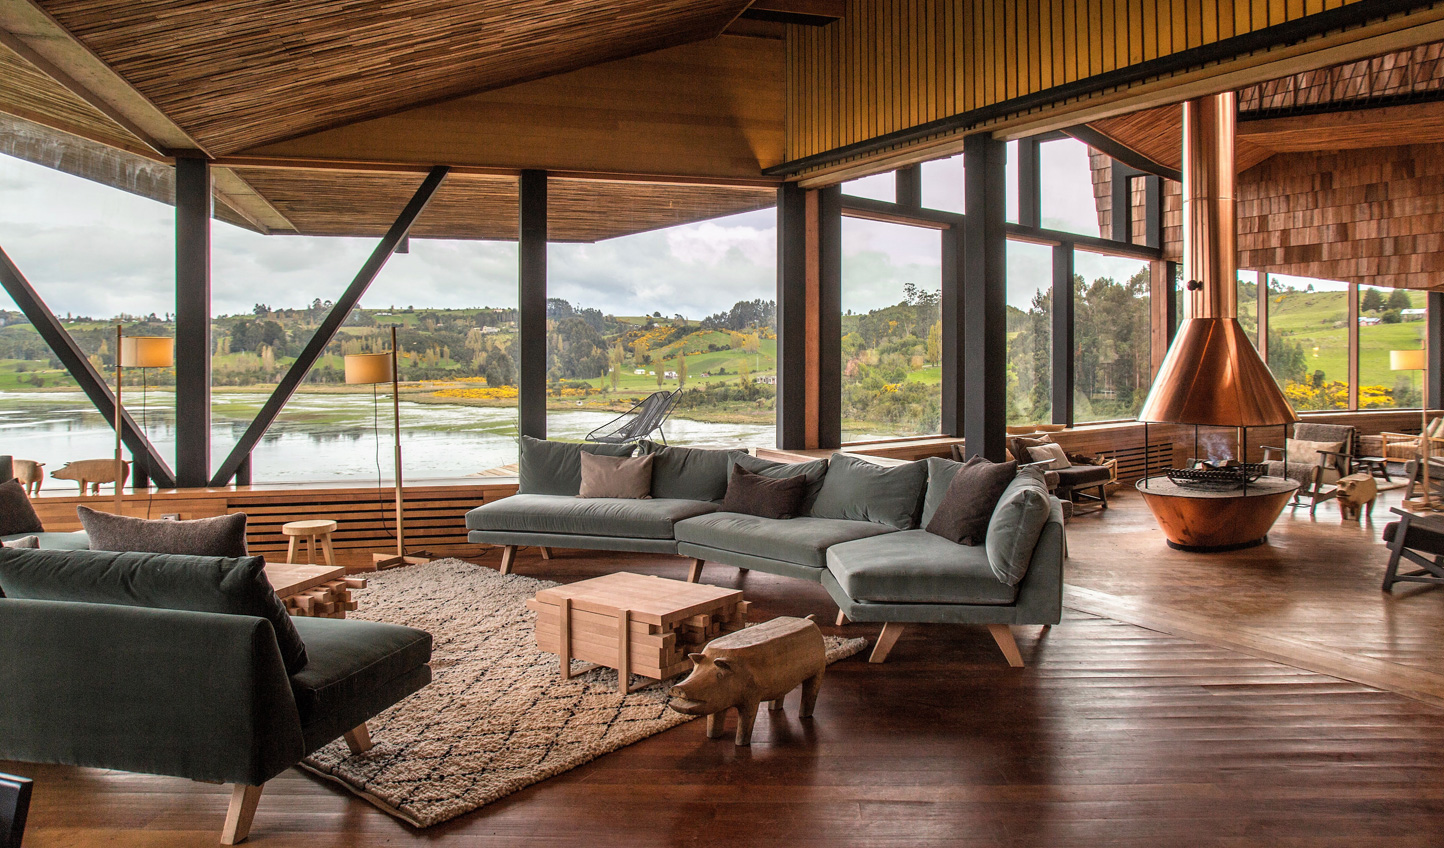 Relax into your final few days in Chile at Tierra Chiloe